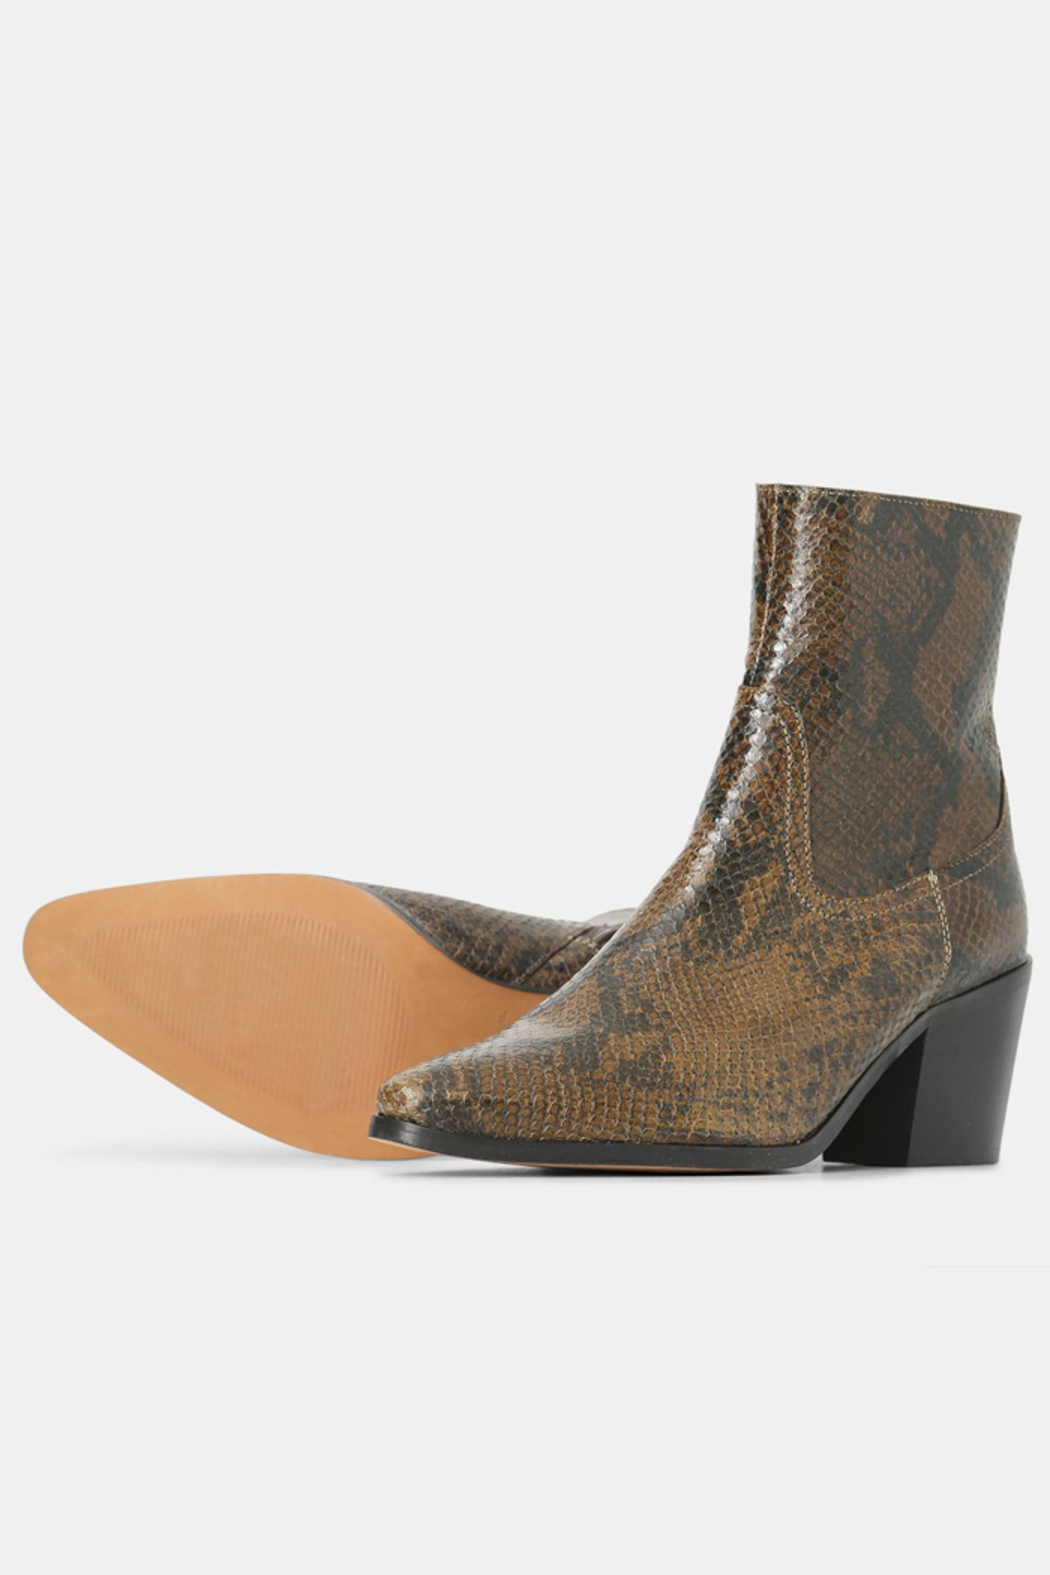 Shoe the Bear BLOCK HEEL SNAKE PRINT BOOT - Front Full Image